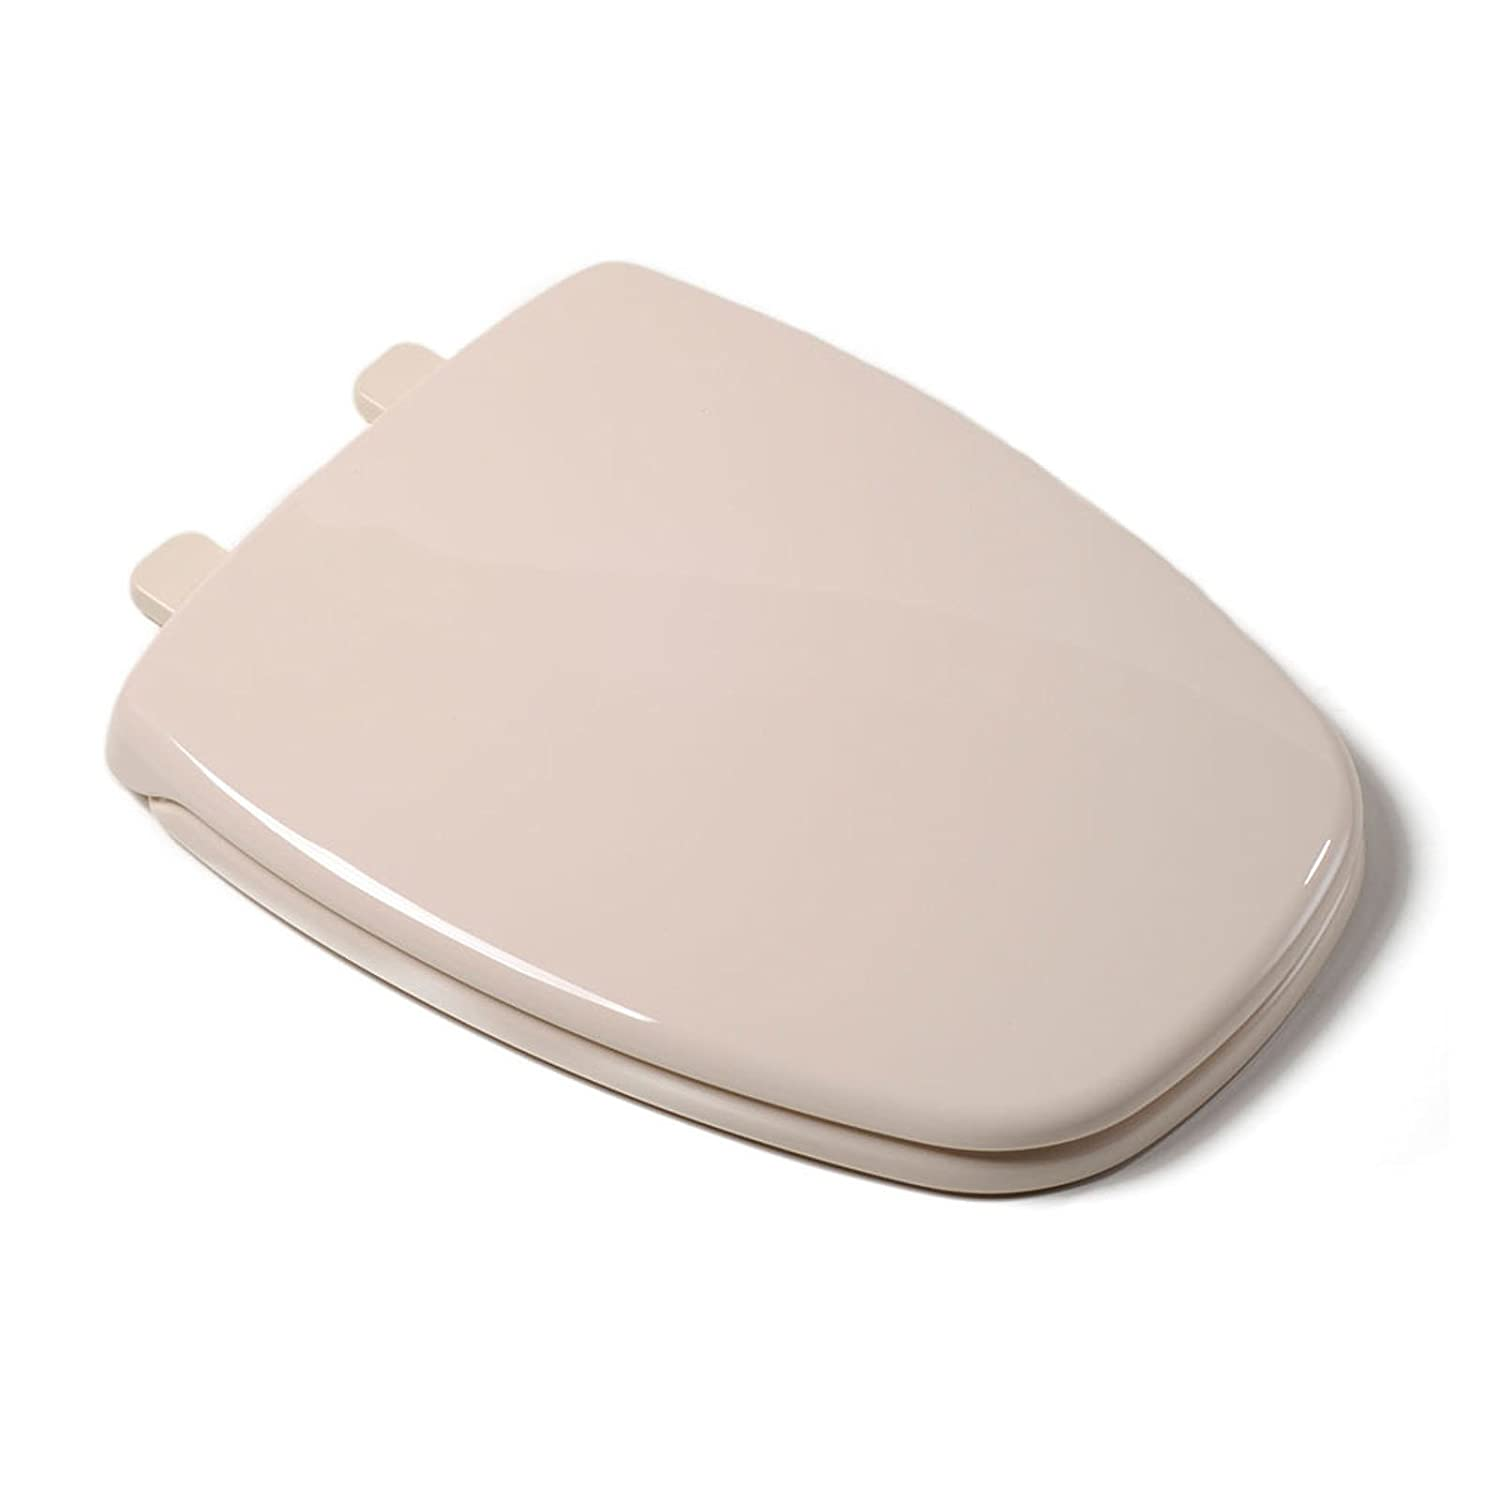 Comfort Seats C1050S01 Plastic Ez Close Elongated Square Front with Cover   Toilet  Seats   Amazon comComfort Seats C1050S01 Plastic Ez Close Elongated Square Front  . Eljer Emblem Toilet Seat. Home Design Ideas